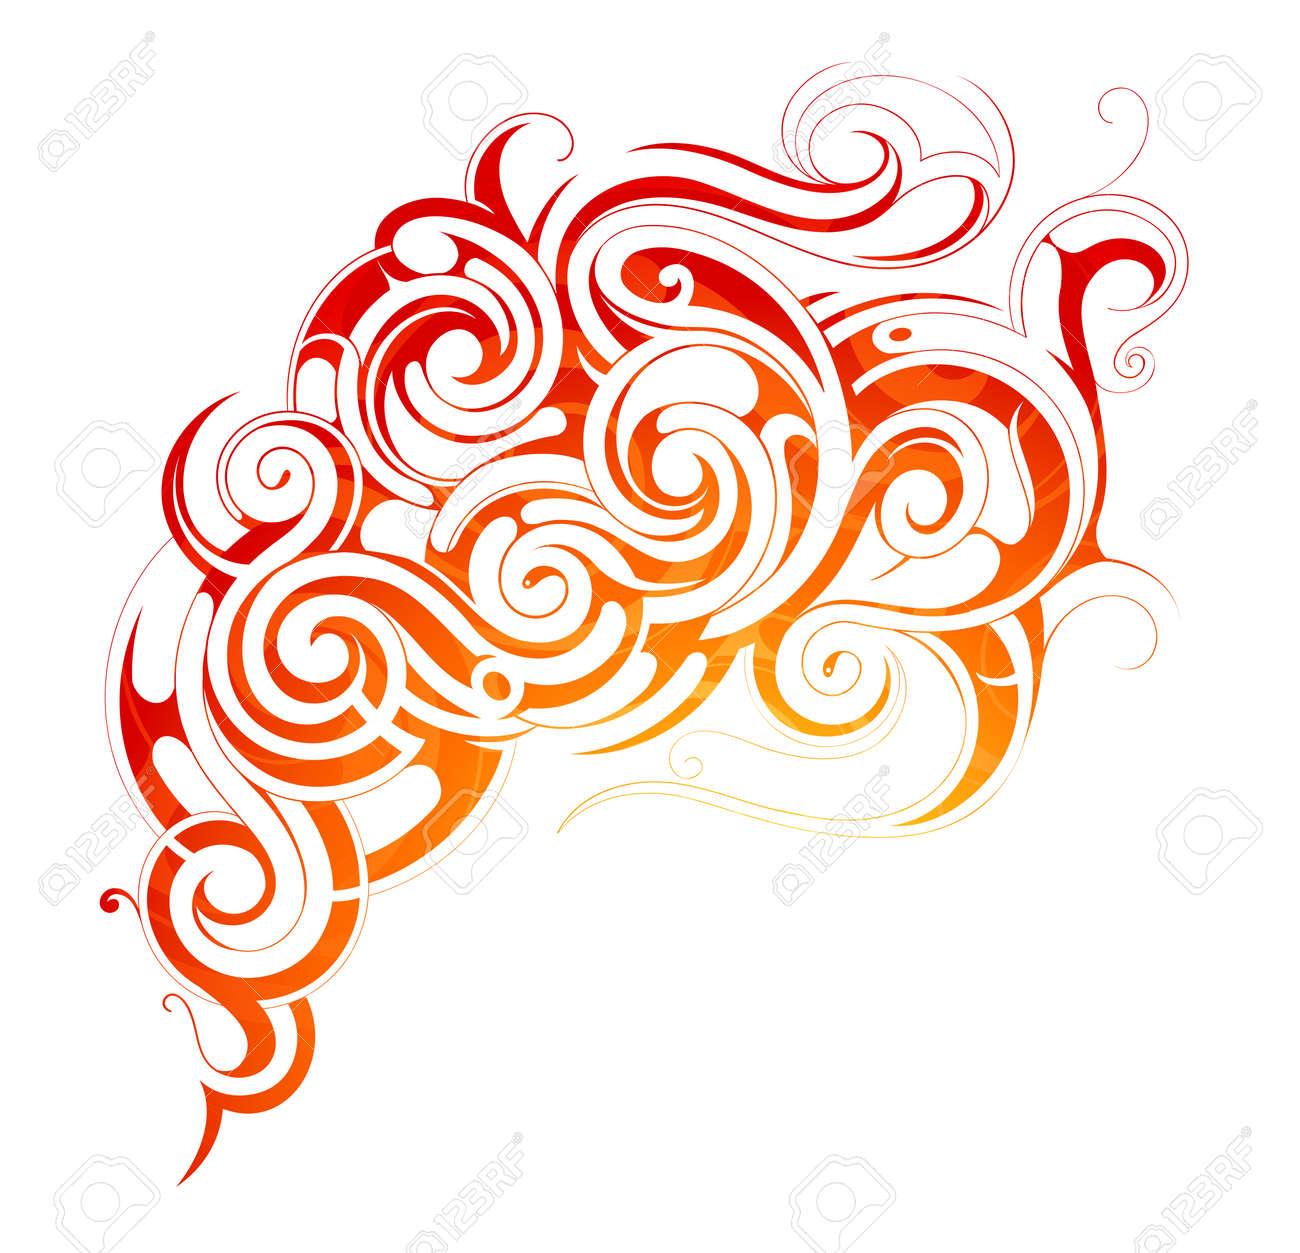 Vector illustration with fire flames and smoke ornament - 39713333